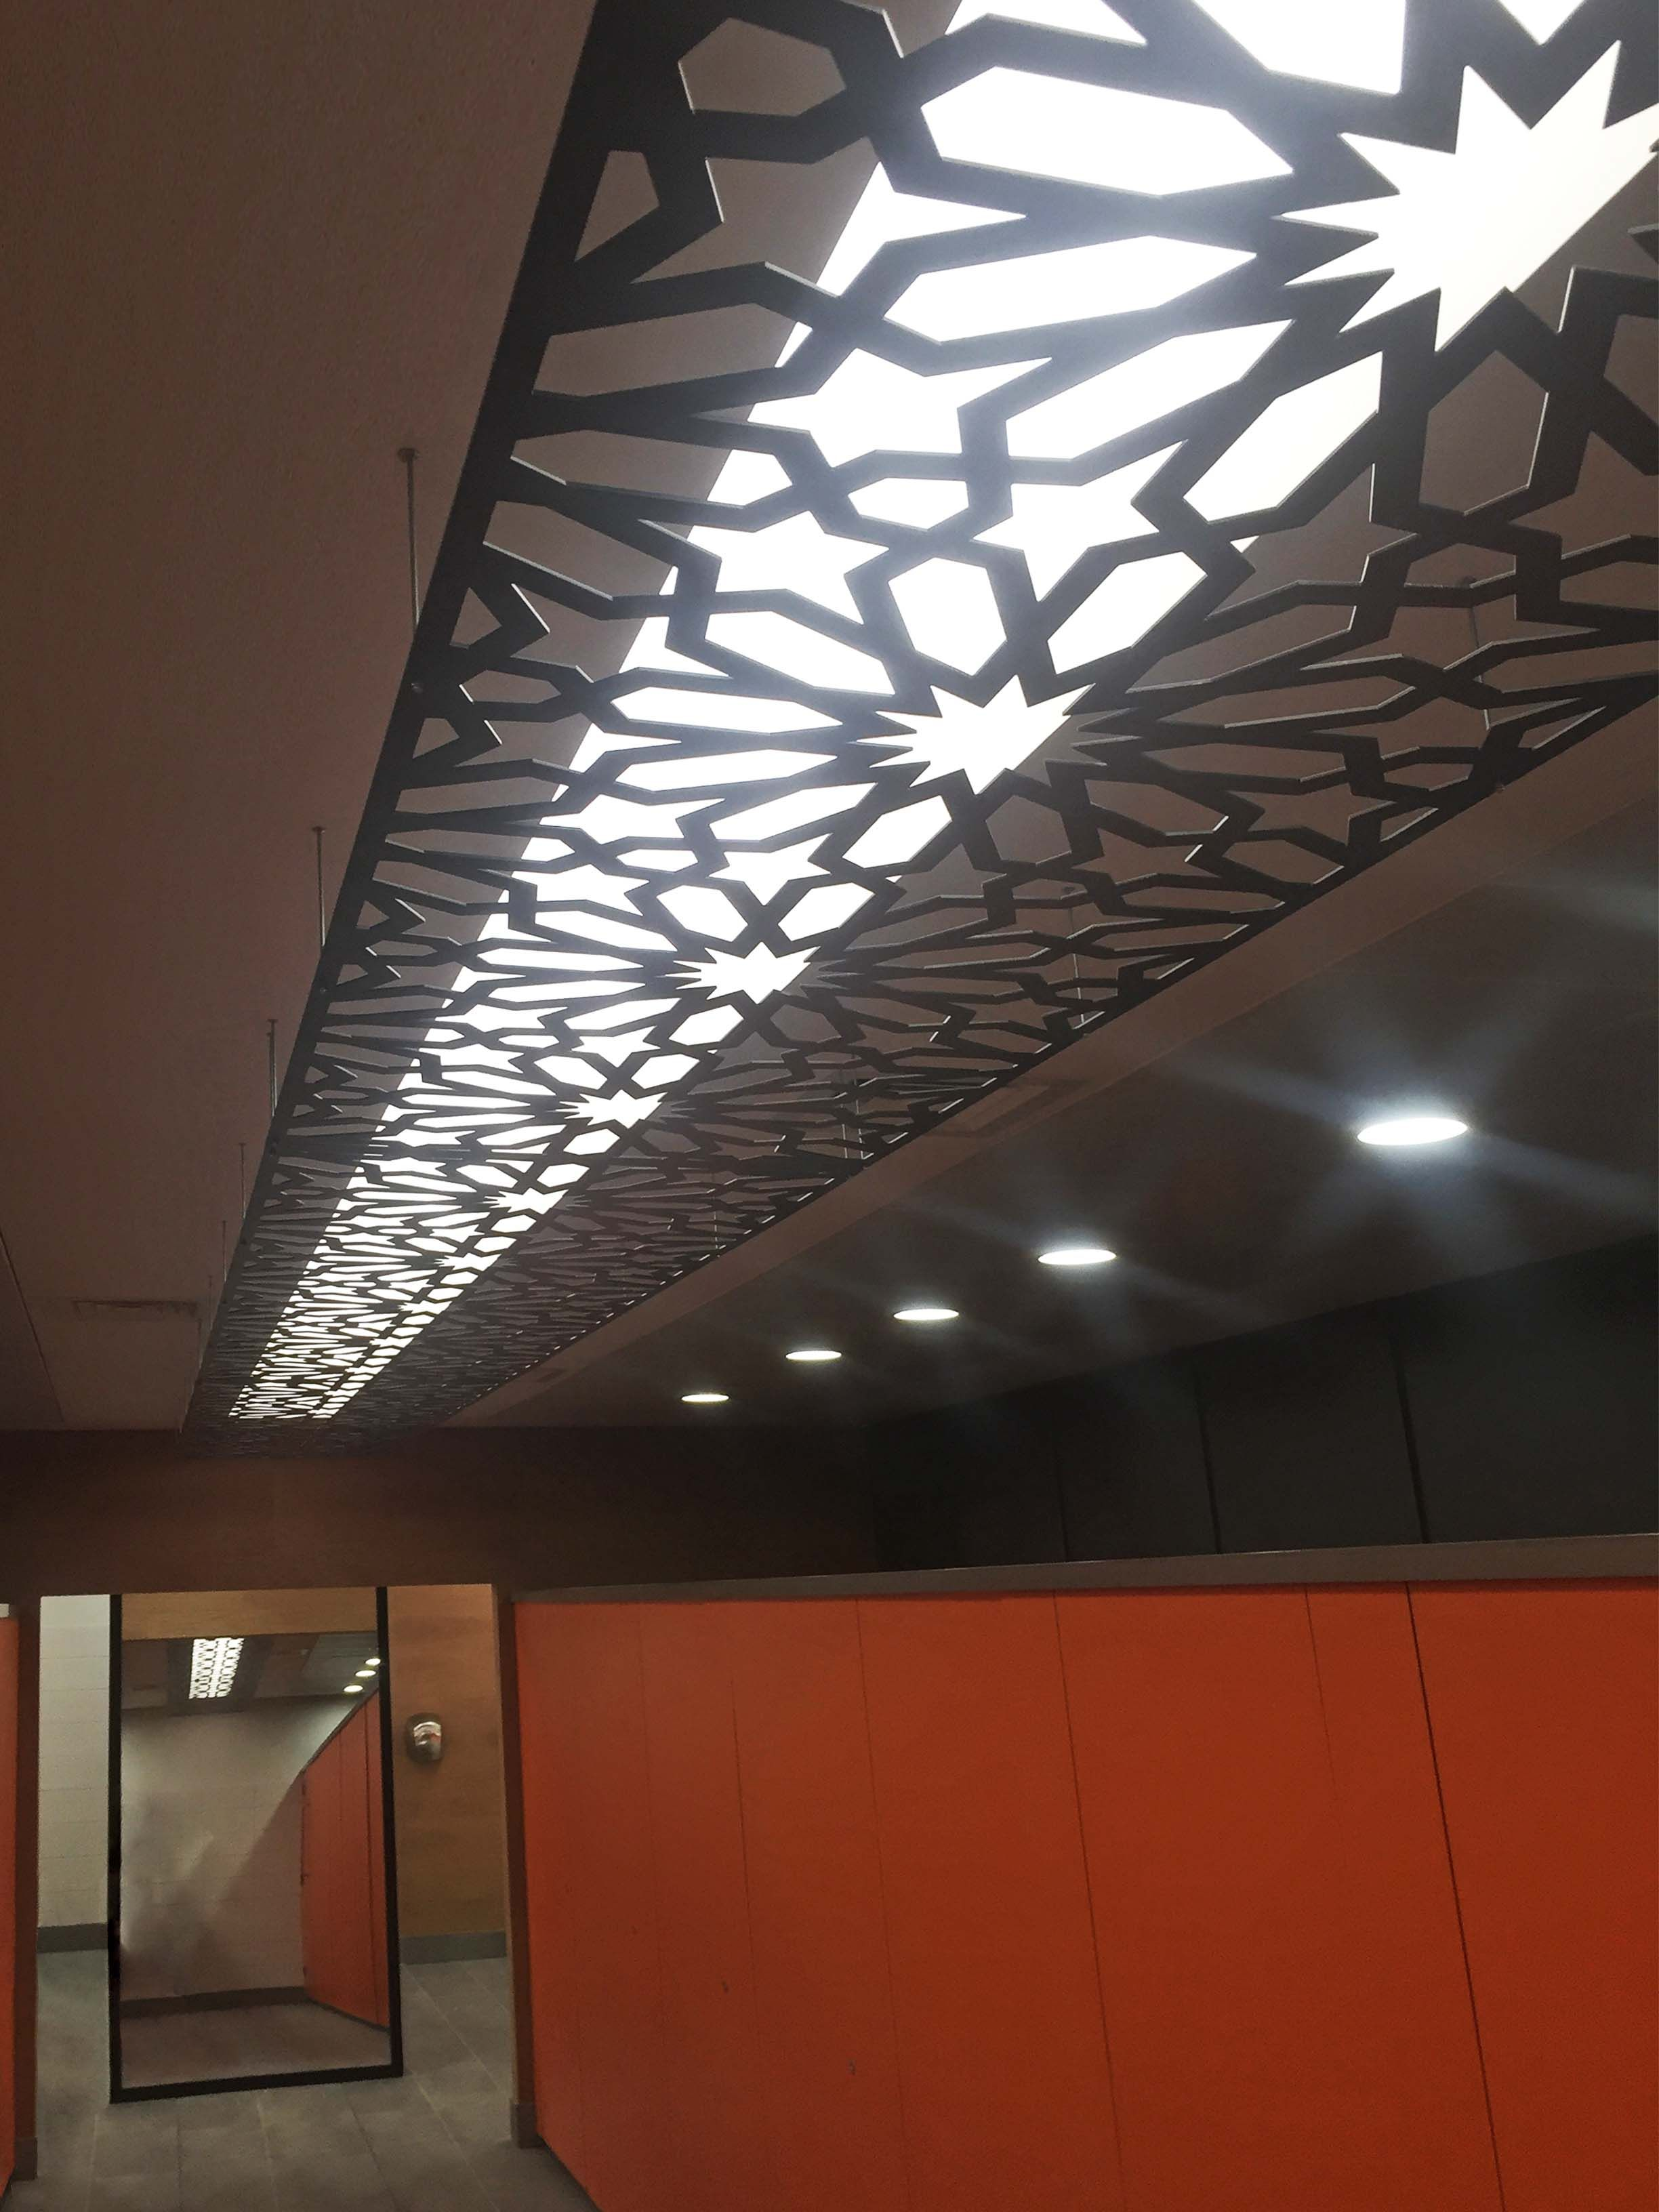 Laser Cut Suspended Ceiling  Intu Shopping Centre, Gateshead Star